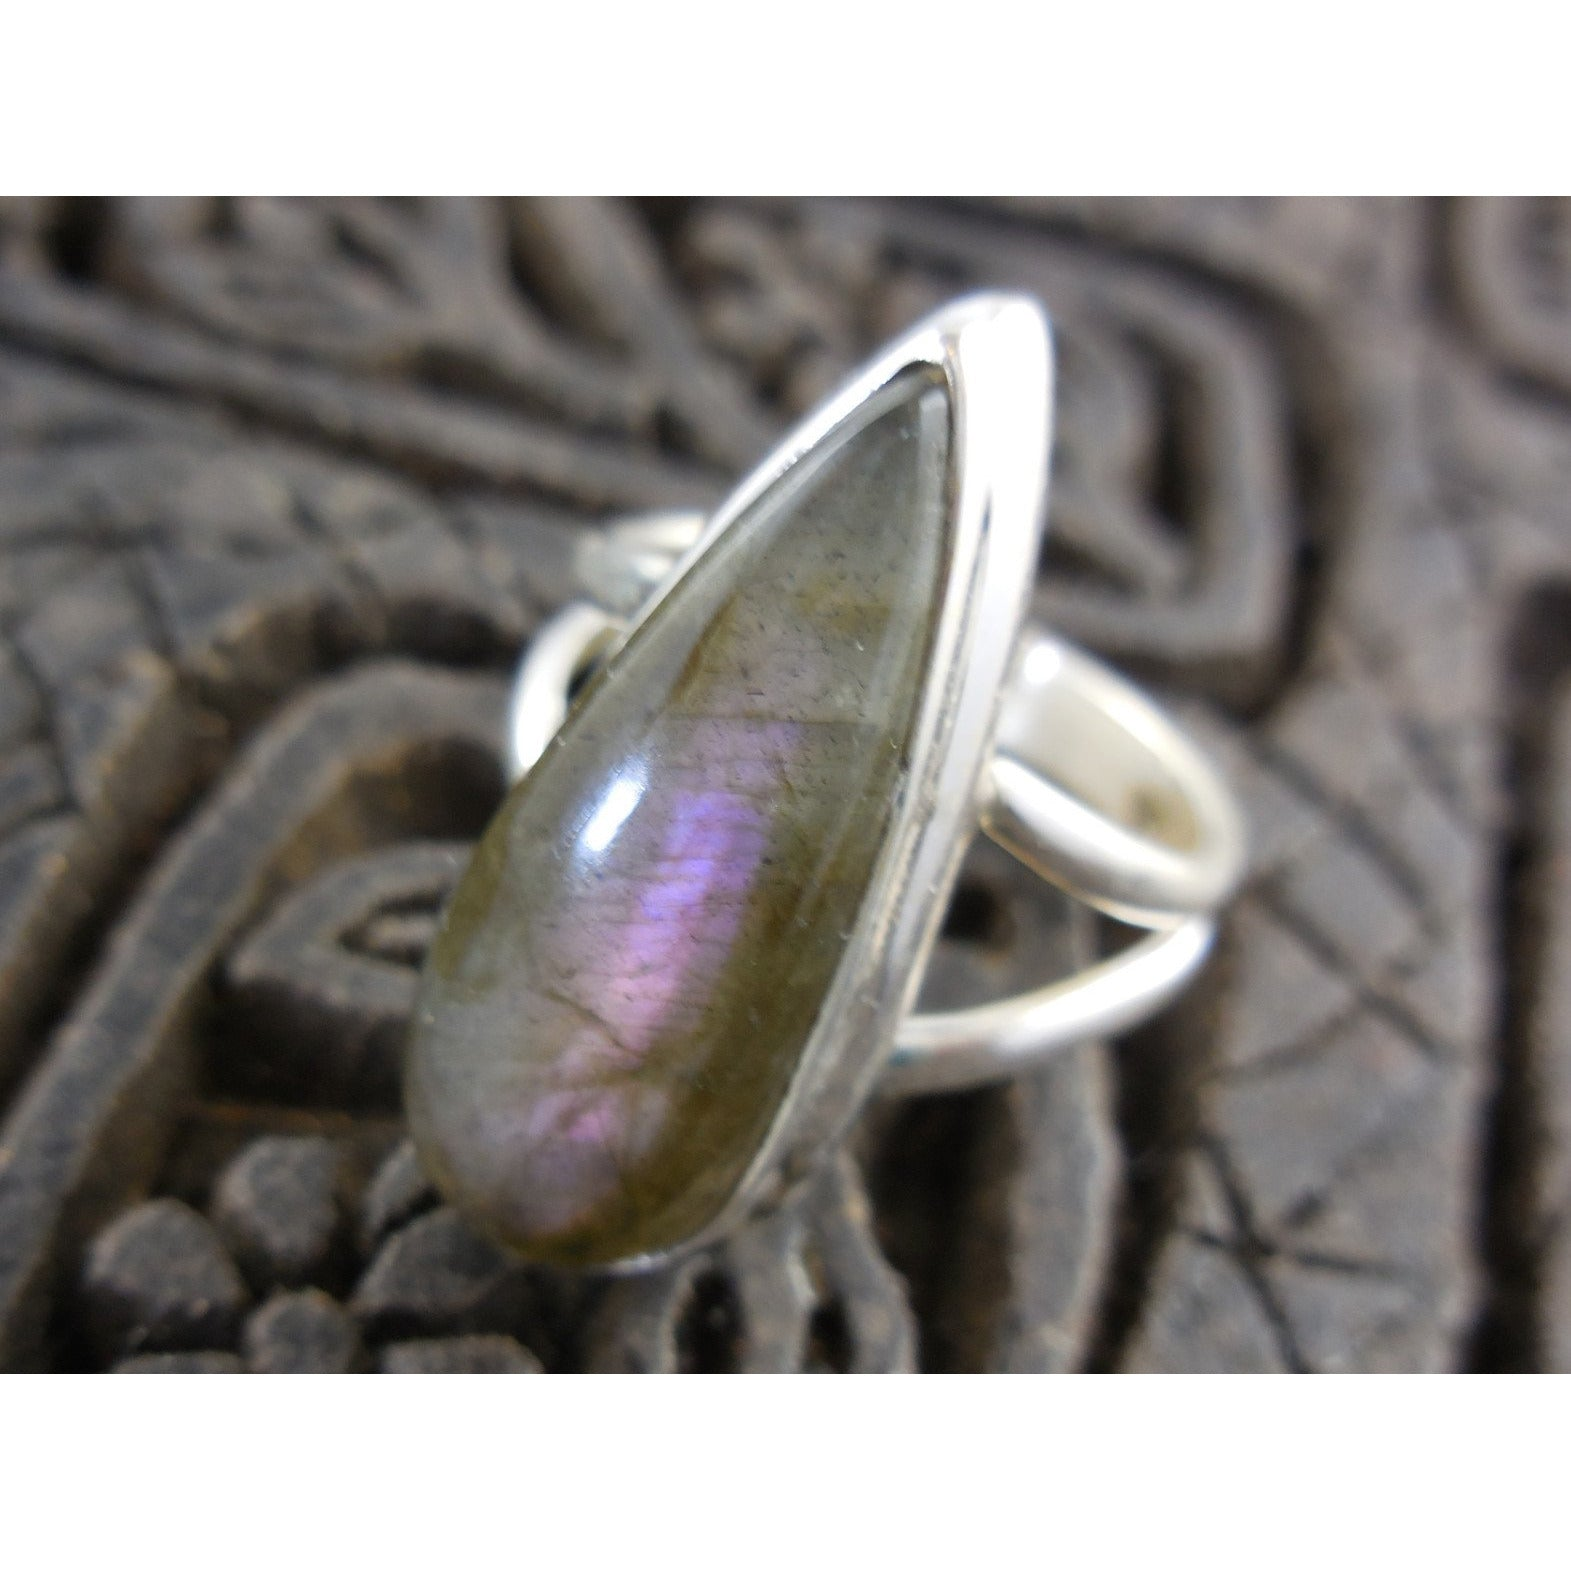 Labradorite Cabochon Gemstone Sterling Silver Ring - Size 6.75